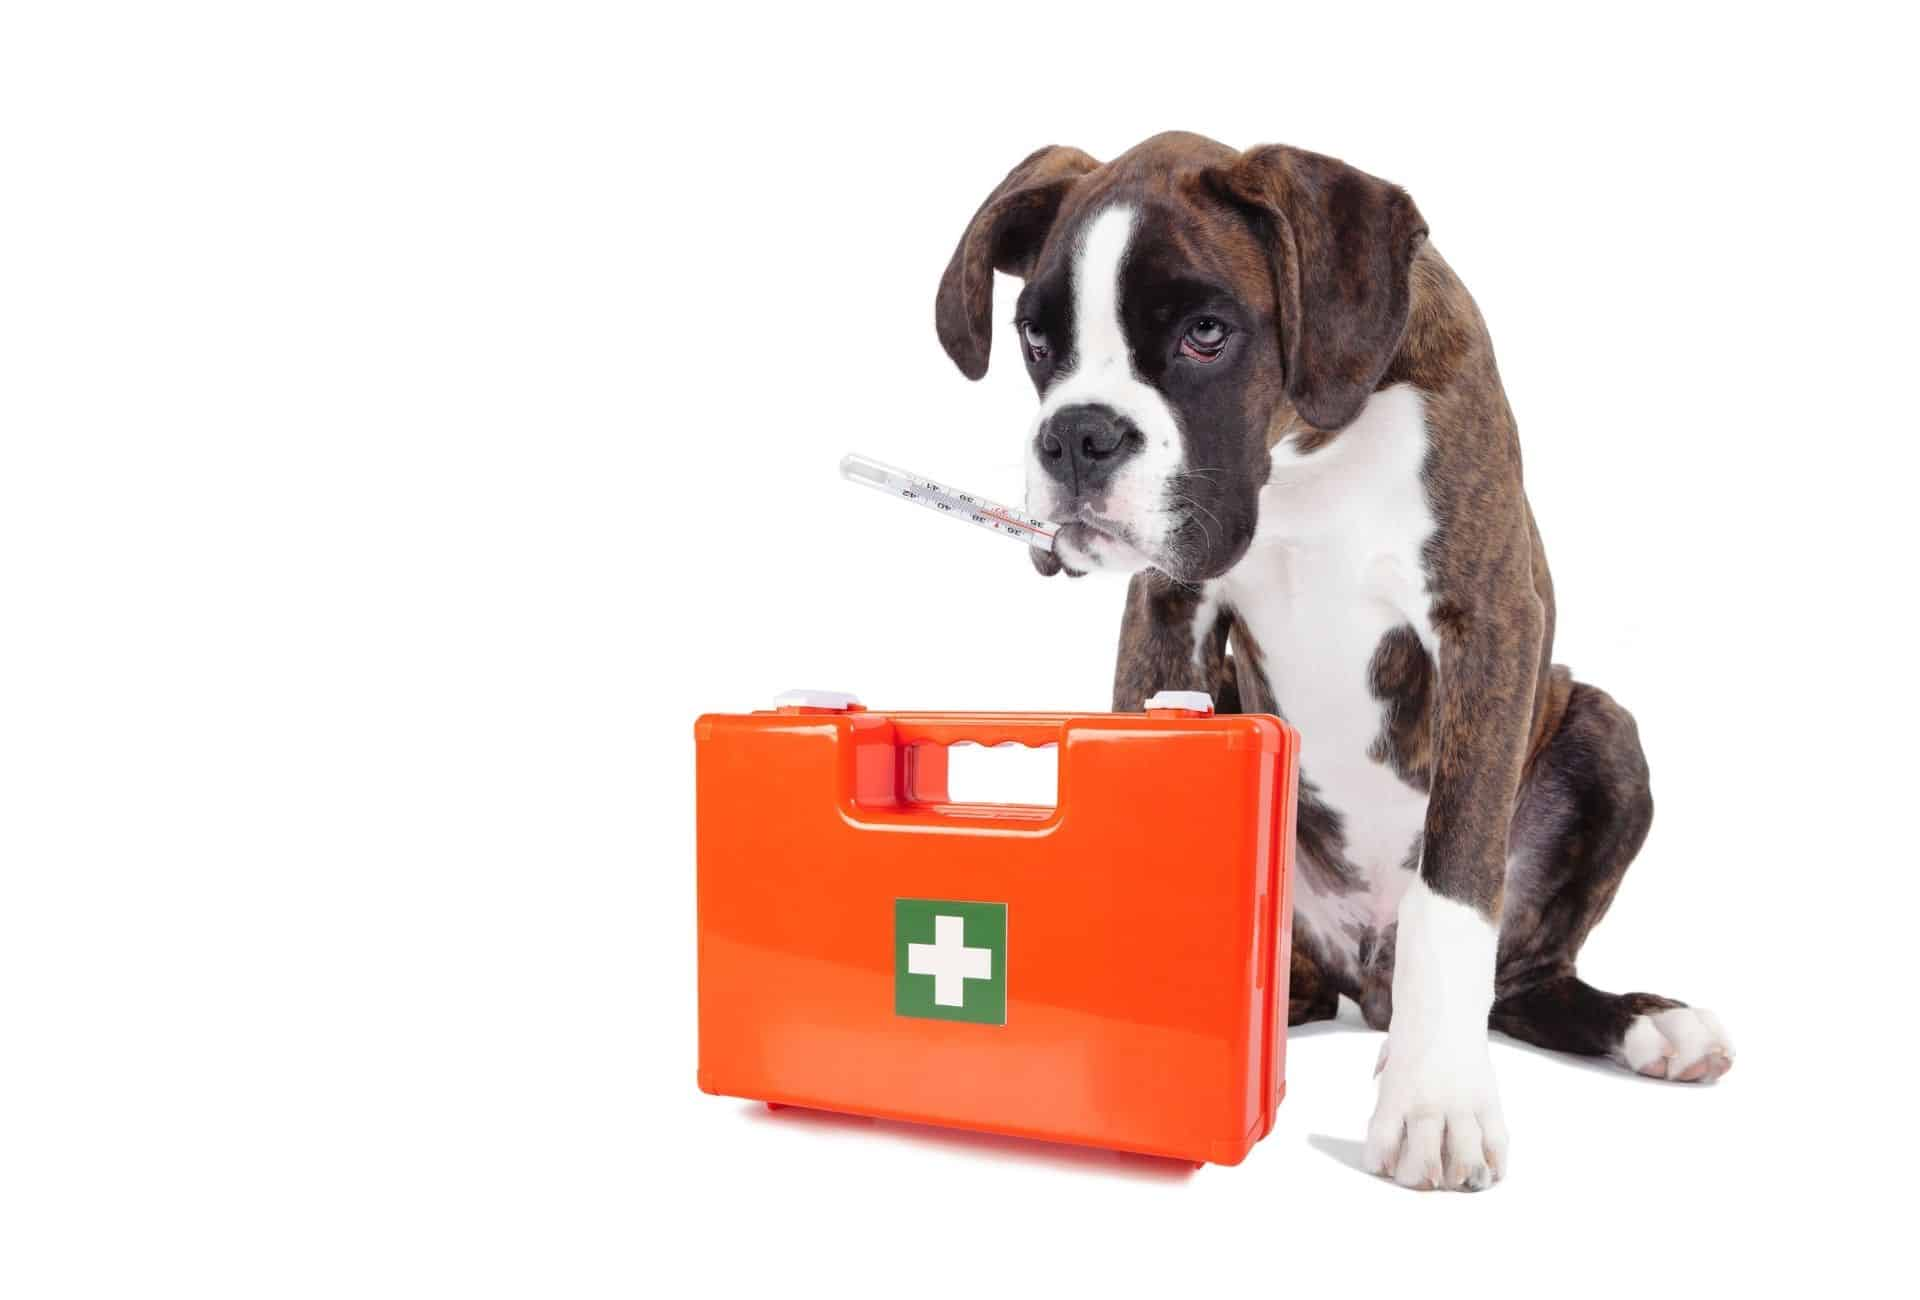 Boxer dog has a veterinary aid kit standing in front of her with a thermometer in mouth. Meaning dogs can need veterinary attention even though they act normal.